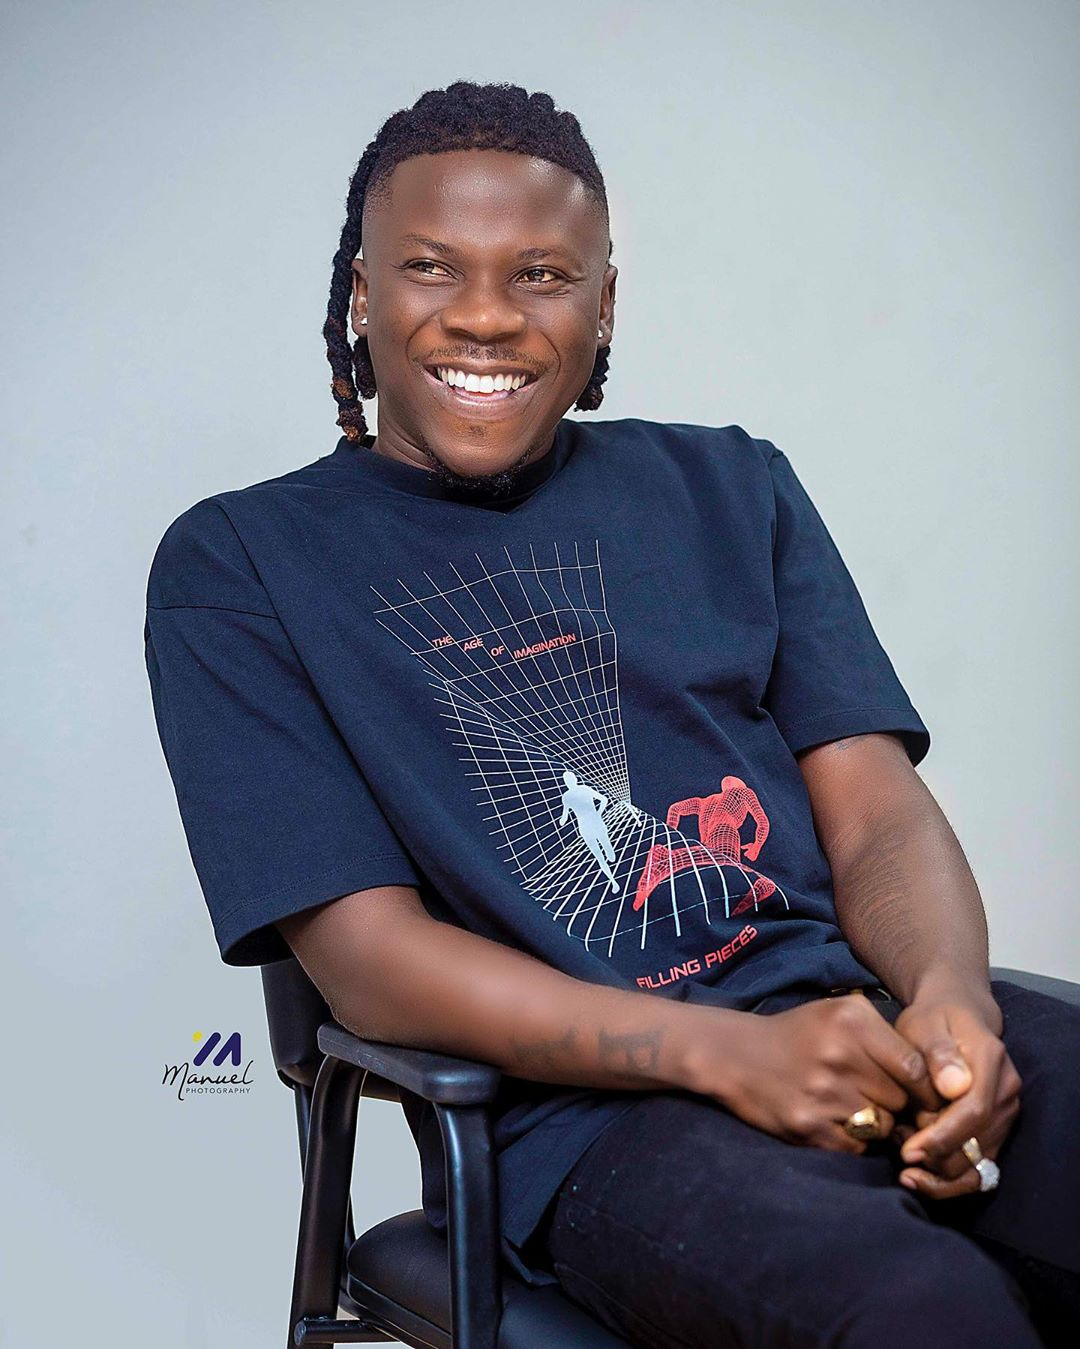 charterhouse,stonebwoy charterhouse, stonebwoy songs, stonebwoy, bhimnation charterhouse, bhimnation,stonebwoy and shatawale, shatawale and stonebwoy,stonebwoy and charterhouse, madam theresa ayoade, madam theresa ayoade charterhouse, ceo, ceo of charterhouse, madam charterhouse, event organisers, events,shatawale and charterhouse, 1gad, 1gad to charterhouse, stonebwoy to charterhouse, stonebwoy ban, ashaiman, tuffseed, stonebwoy 2019, stonebwoy 2020, stonebwoy songs, stonebwoy ololo, ololo, stonebwoy awards, stonebwoy boss it up, stonebwoy billboard, stonebwoy concert 2020, stonebwoy epistles of mama,dancehall, reggaeton, reggae artist, dancehall reggae, dancehall artist, versatile, reggae,reggae music, afro pop, afro dancehall, afro reggae,volumegh, bhim, shata movement,